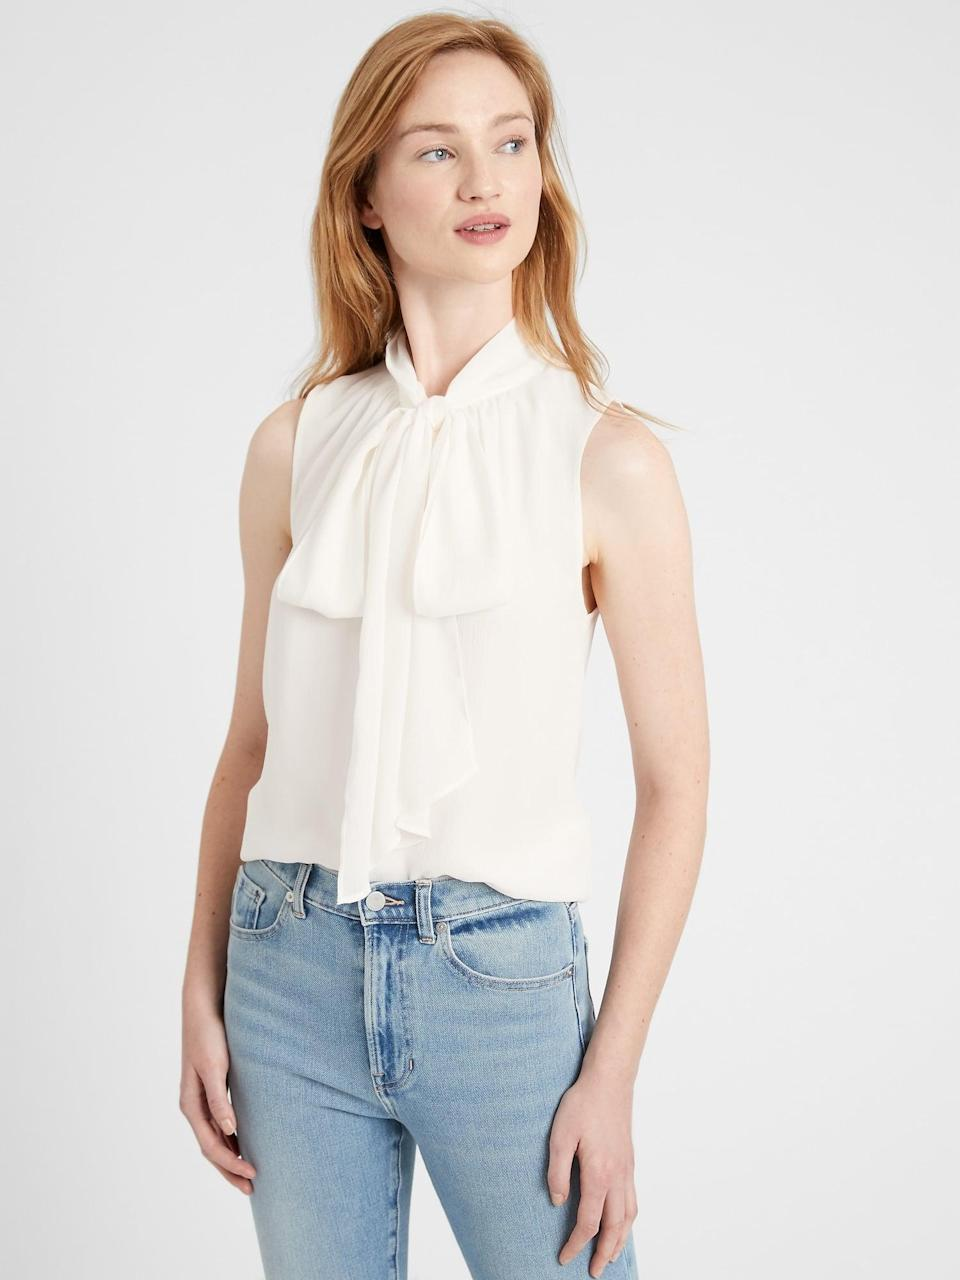 """<p>The <span>Banana Republic Tie-Neck Blouse</span> ($80) is a <a href=""""https://www.popsugar.com/fashion/photo-gallery/19163066/image/19163491/pussy-bow-blouse-must-have-comes-versatile"""" class=""""link rapid-noclick-resp"""" rel=""""nofollow noopener"""" target=""""_blank"""" data-ylk=""""slk:wardrobe staple"""">wardrobe staple</a> that you'll wear time and time again. </p>"""